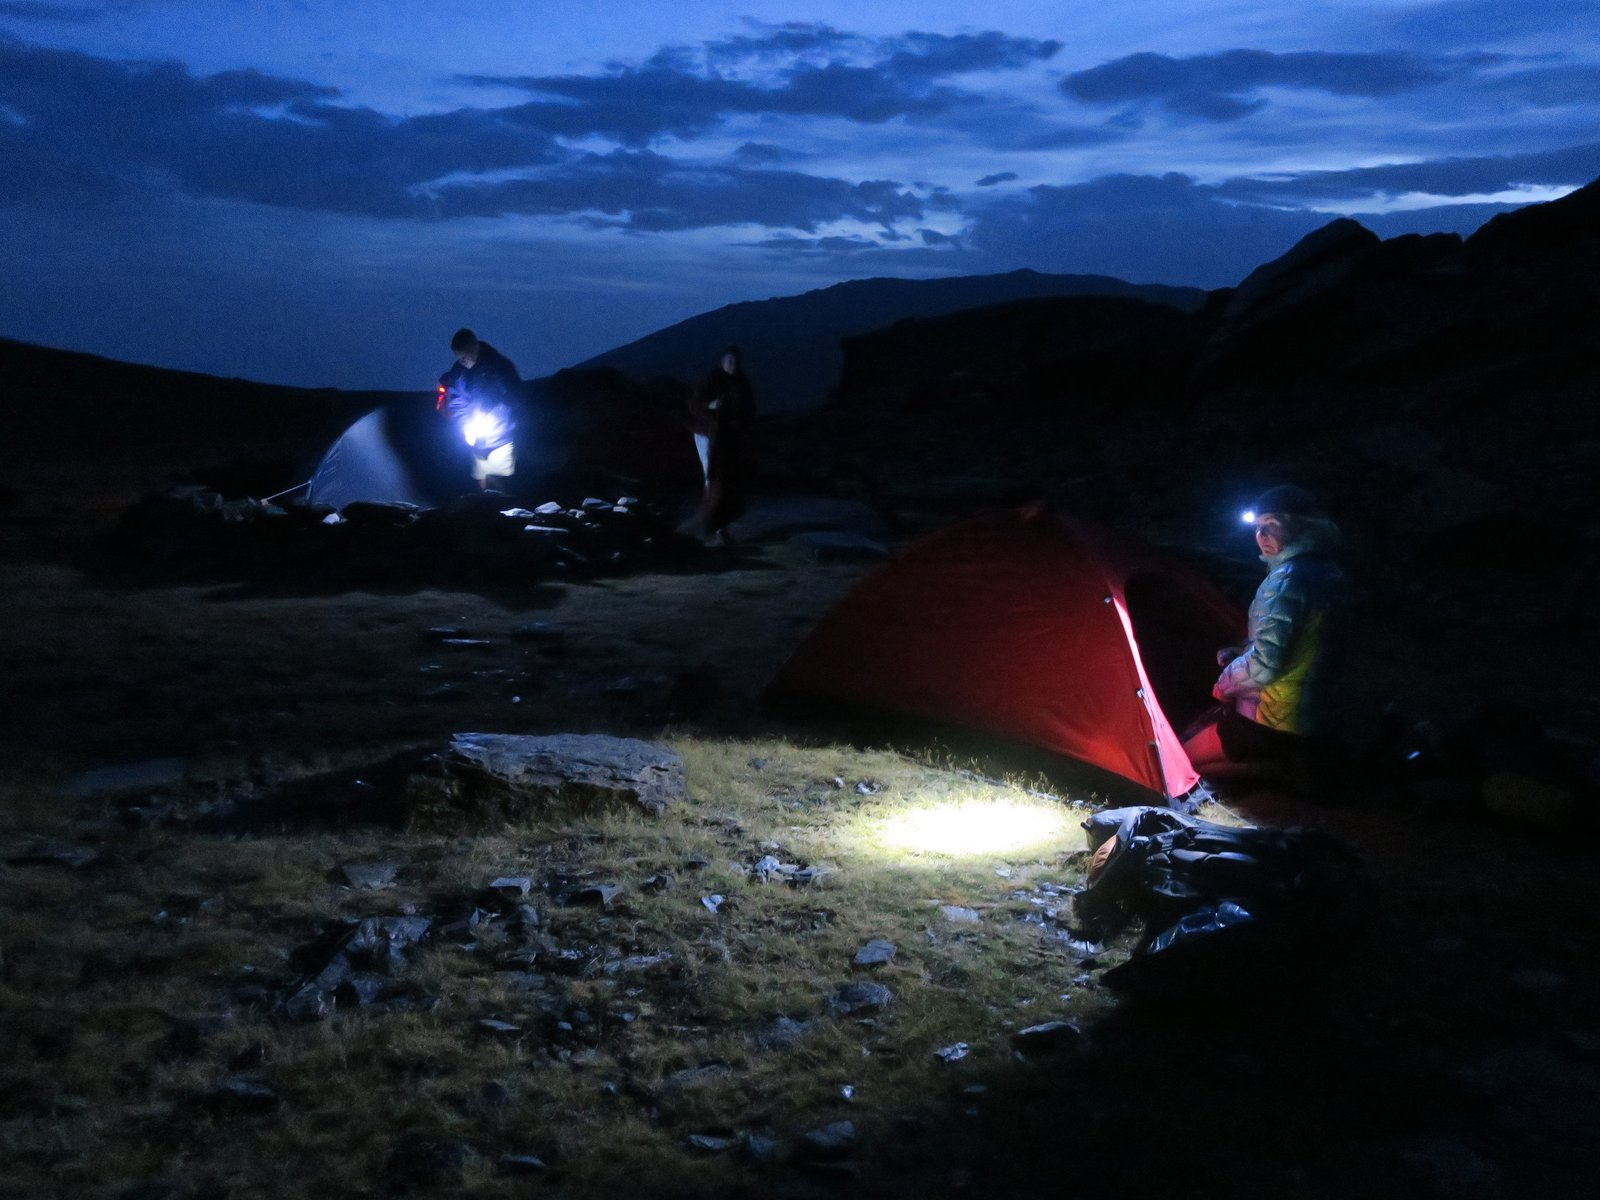 Striking camp at first light in the Sierra Nevada